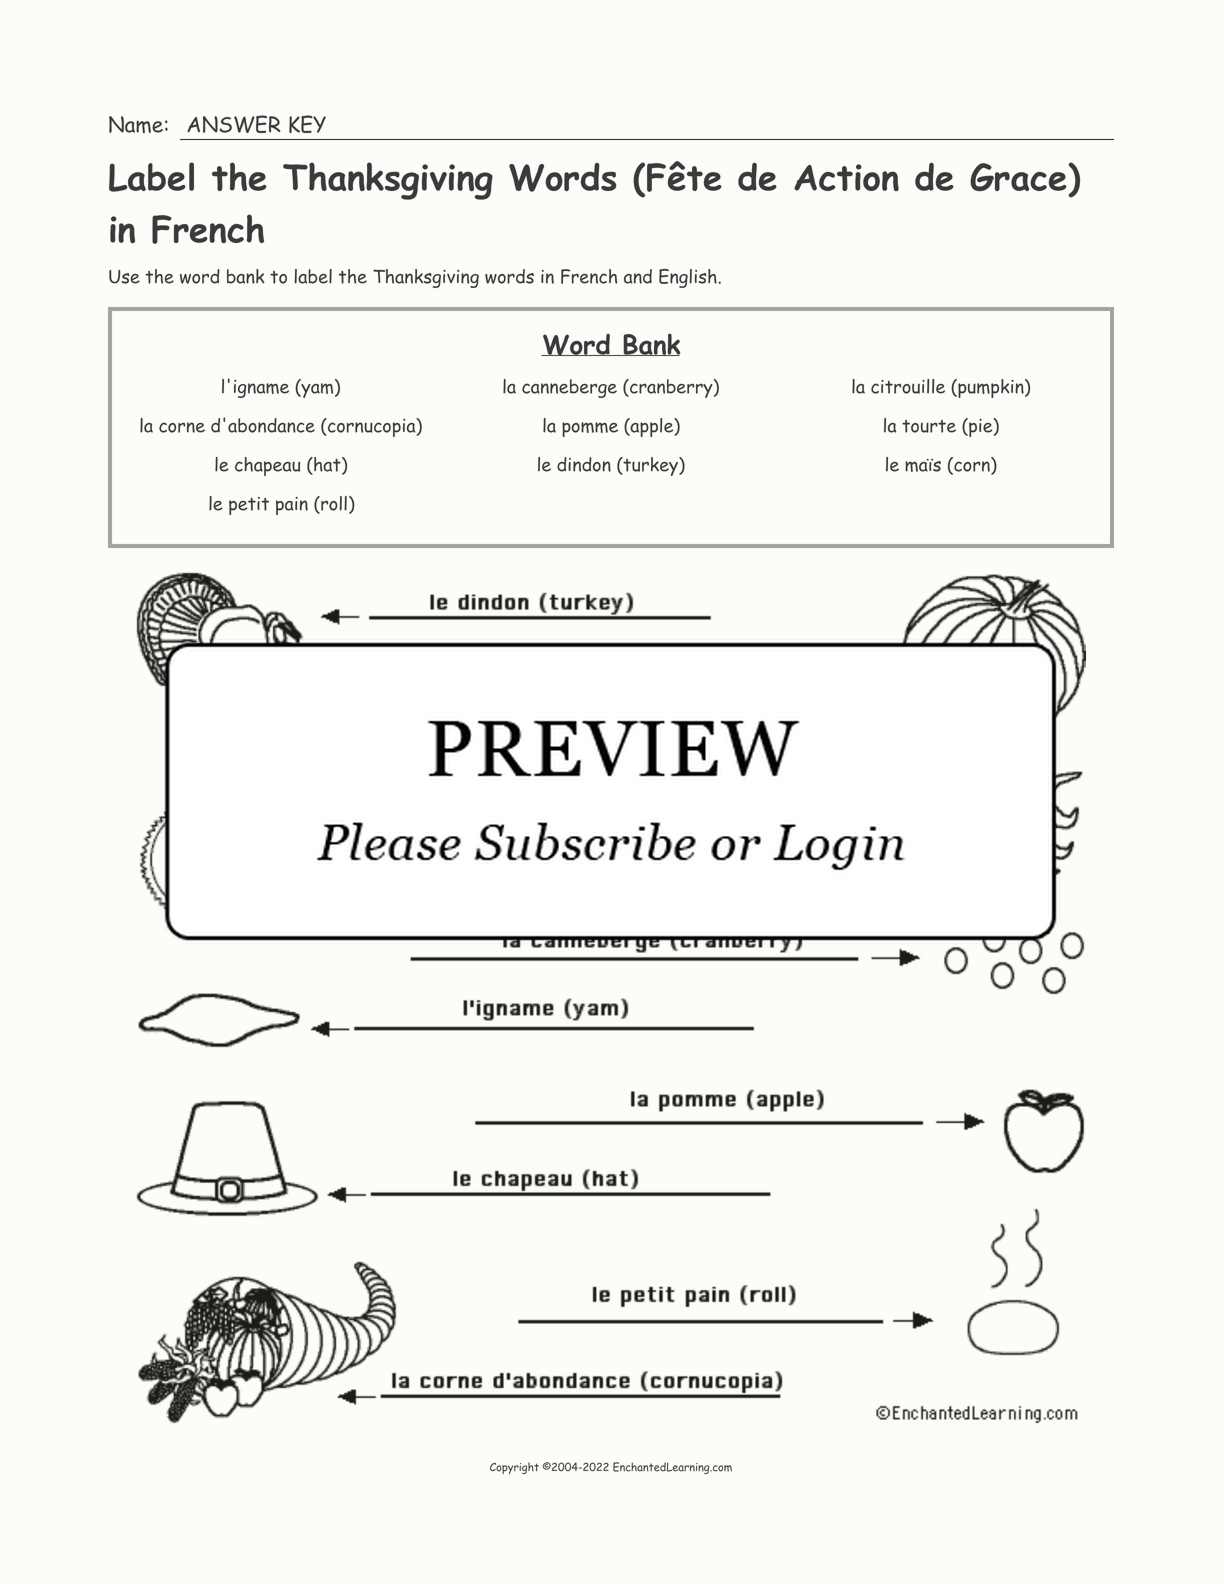 Label the Thanksgiving Words (Fête de Action de Grace) in French interactive worksheet page 2